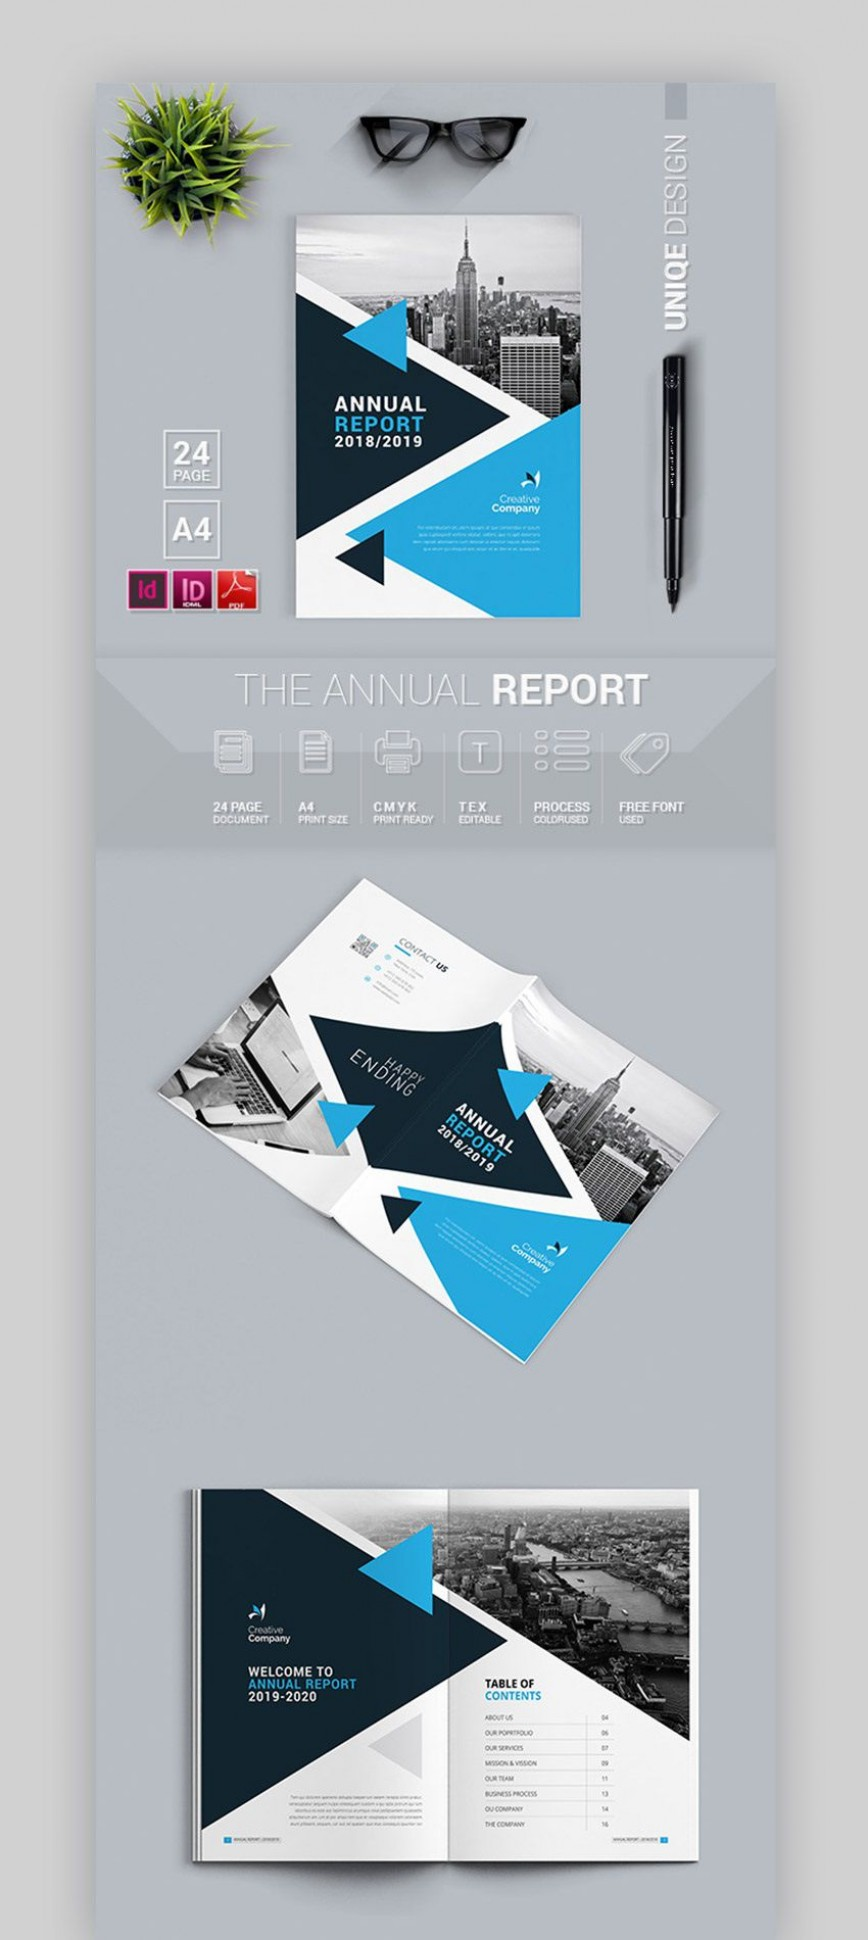 001 Fascinating Annual Report Design Template Indesign  Free Download868